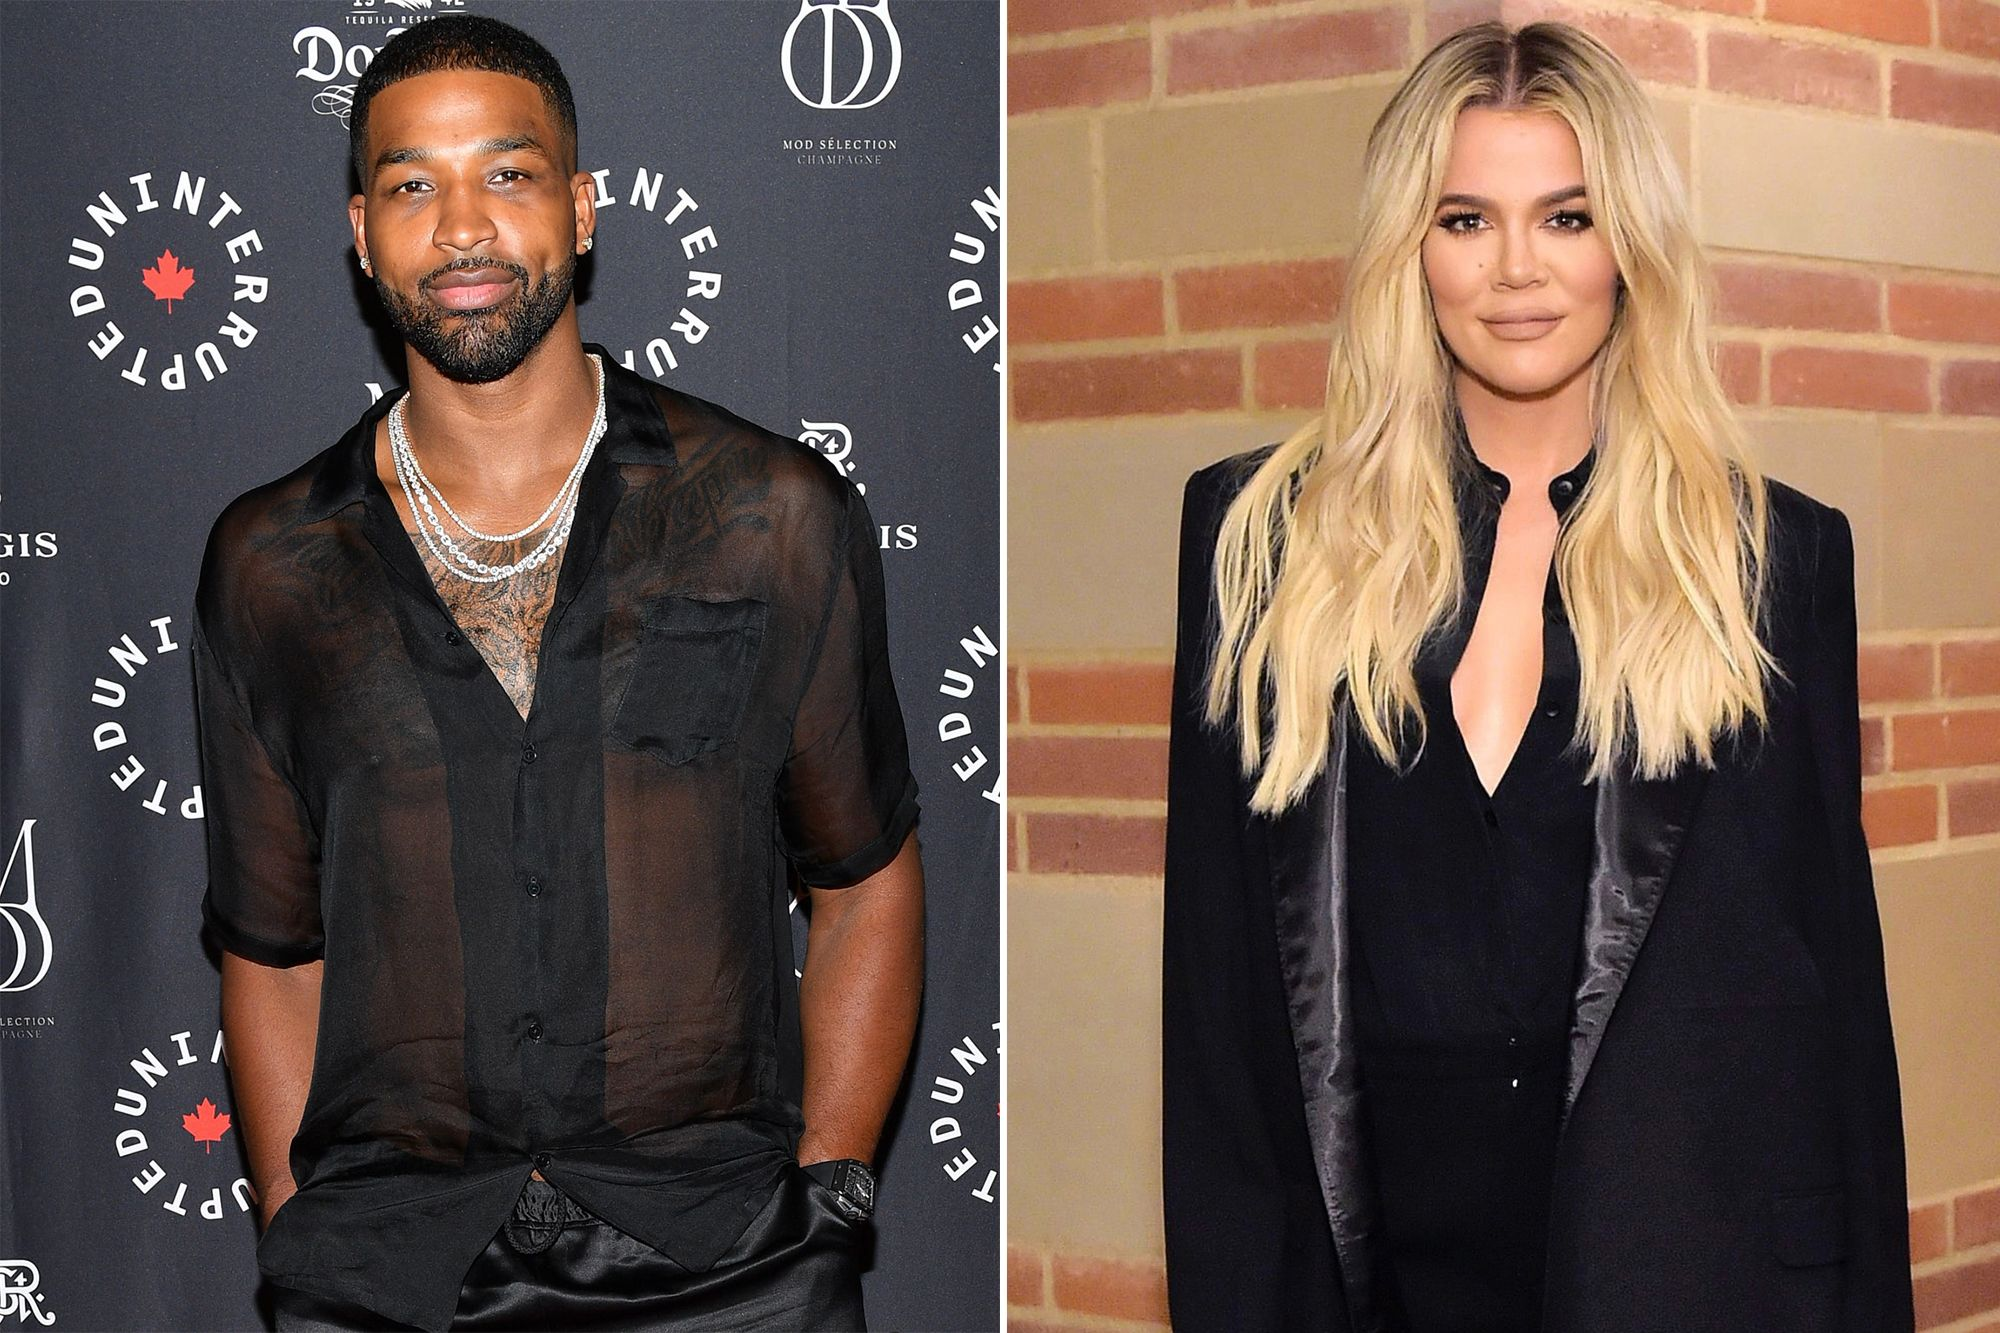 kuwtk-khloe-kardashian-gushes-over-tristan-thompson-in-birthday-message-and-calls-him-the-one-thats-meant-to-be